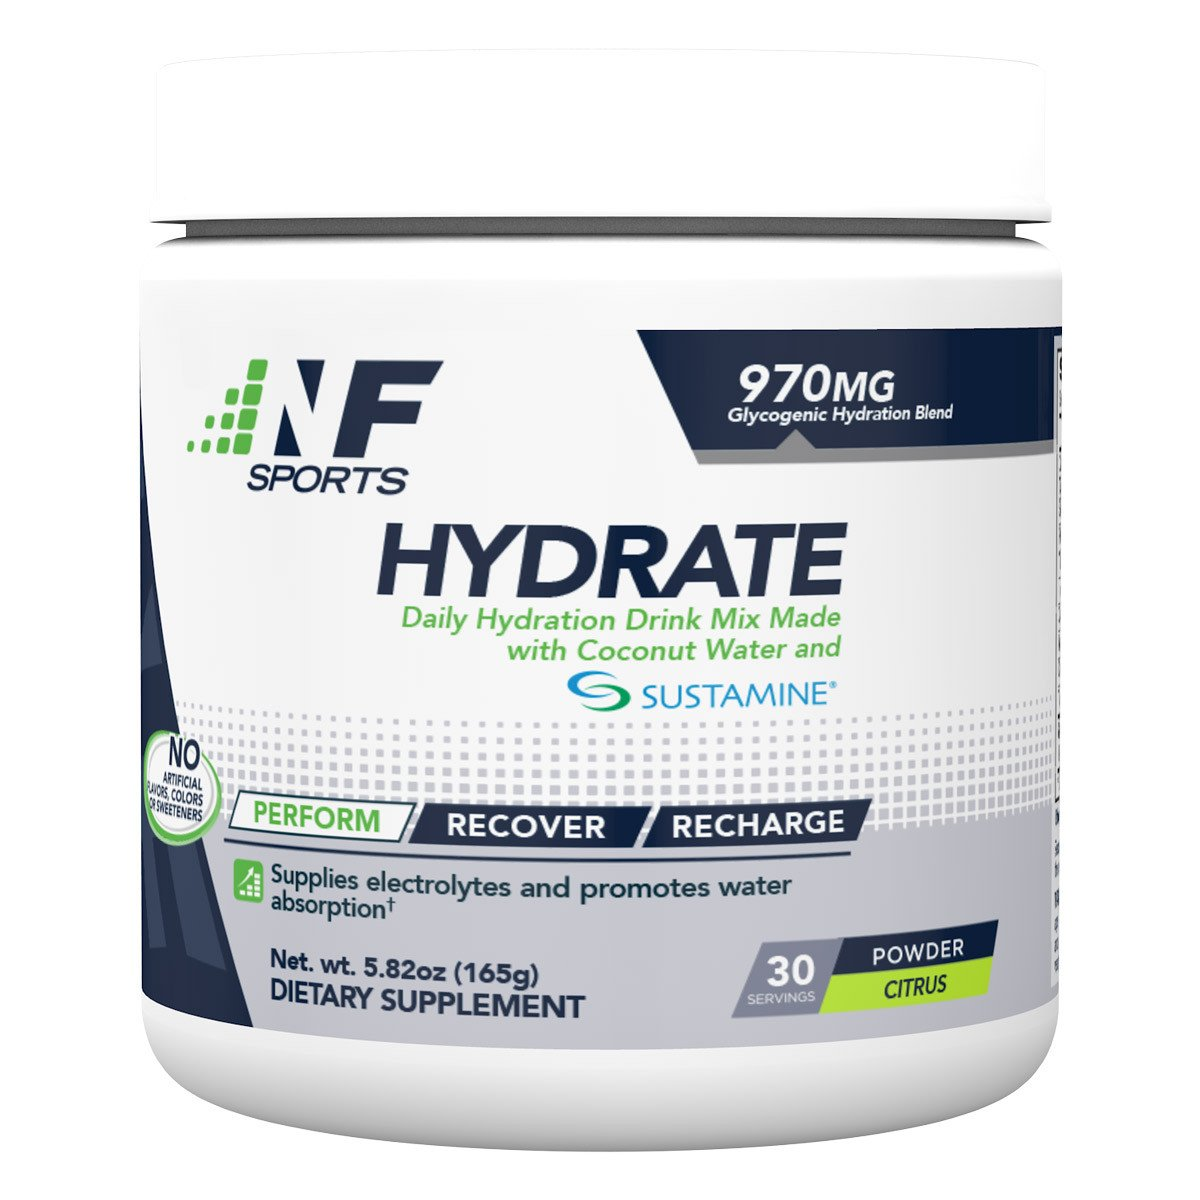 nf-sports-hydrate-citrus-product-detail-new